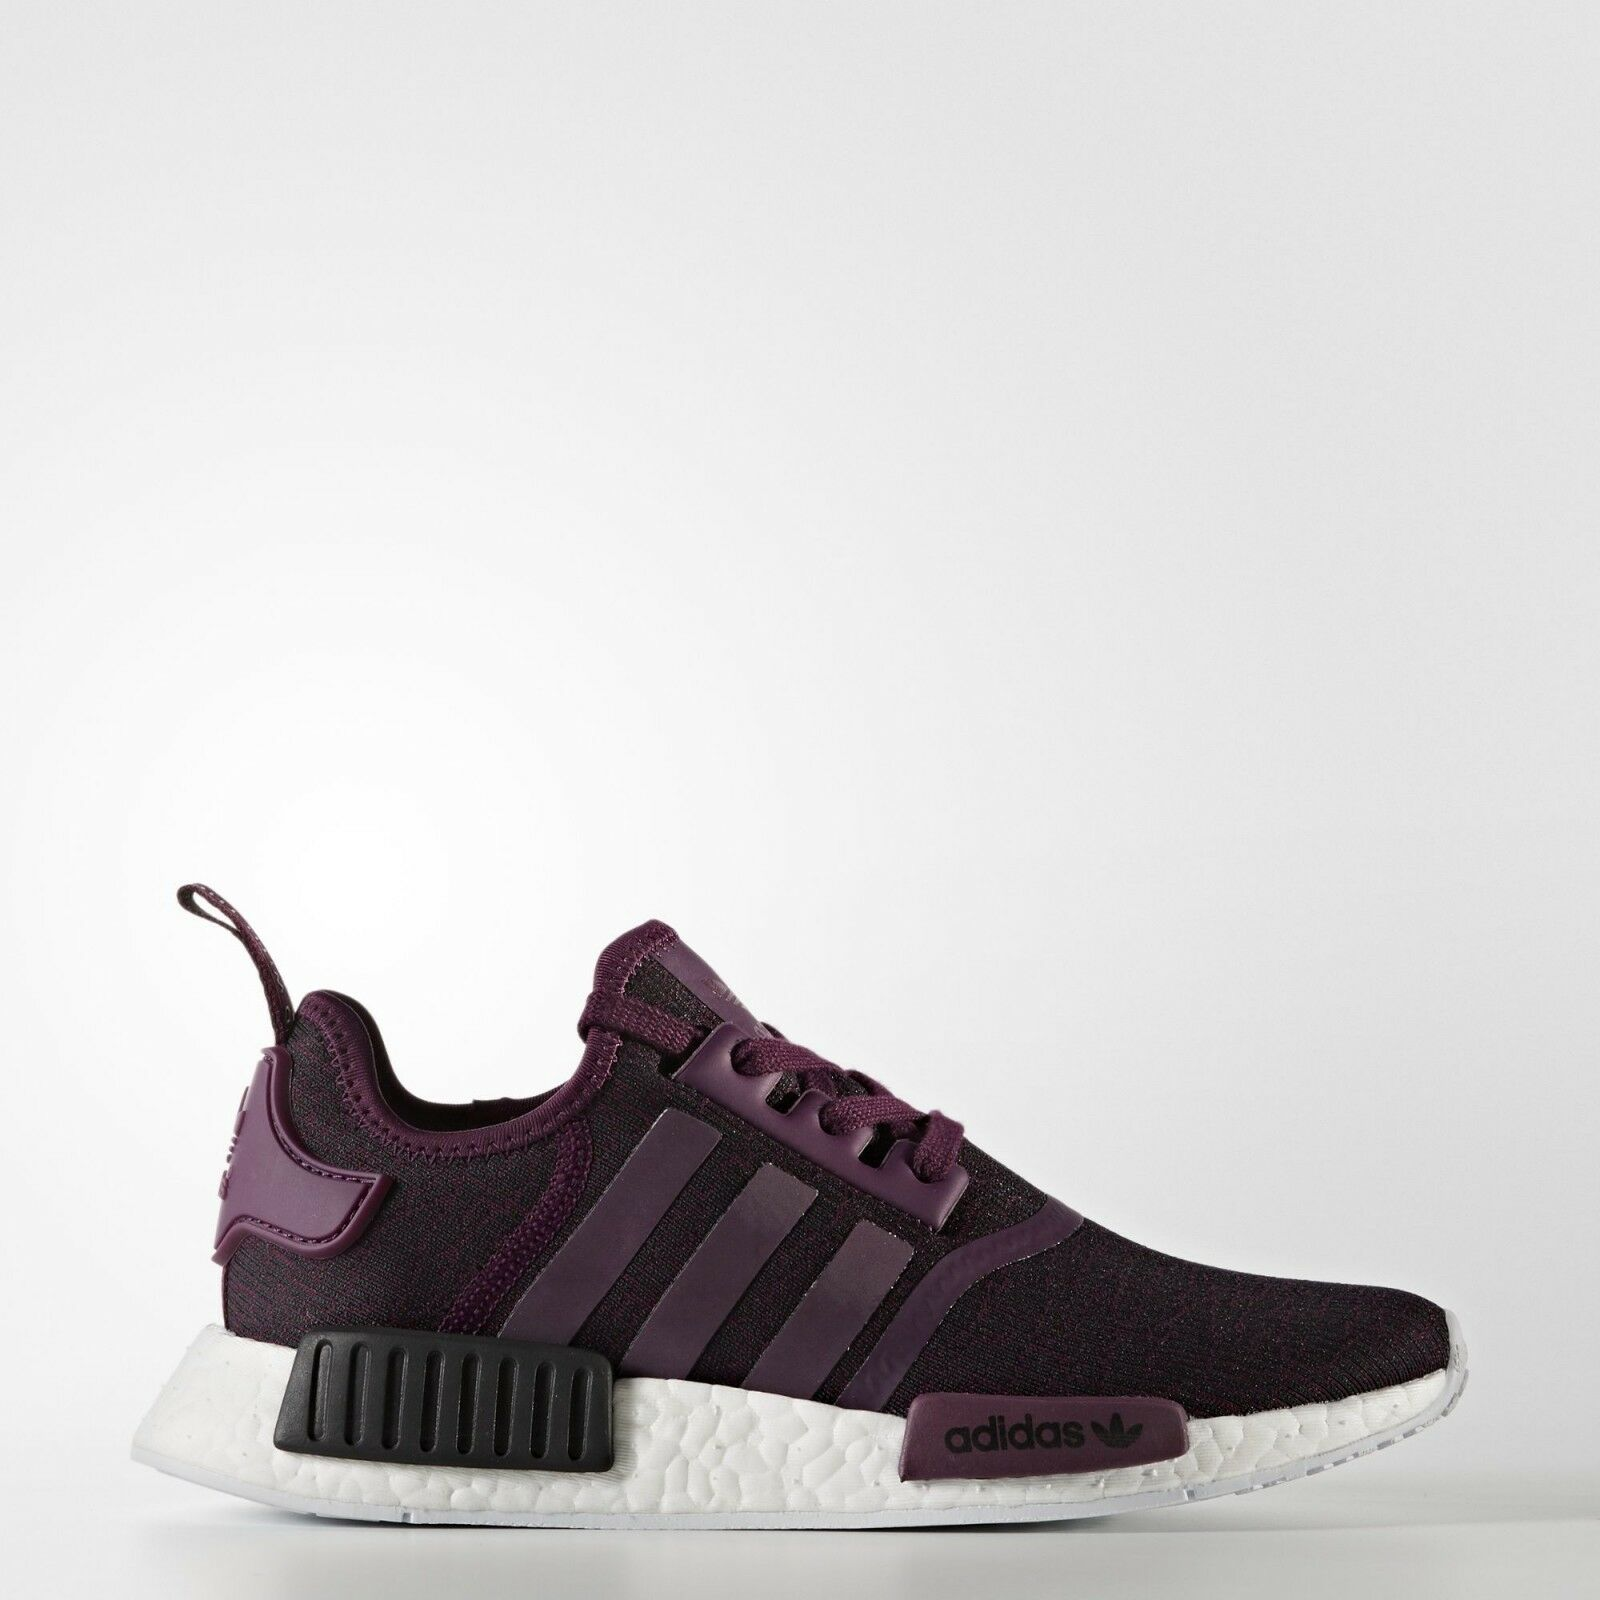 new style e67bc eb853 Adidas NMD R1 Purple Maroon Europe Women s Size 9.5 9.5 9.5 d14915